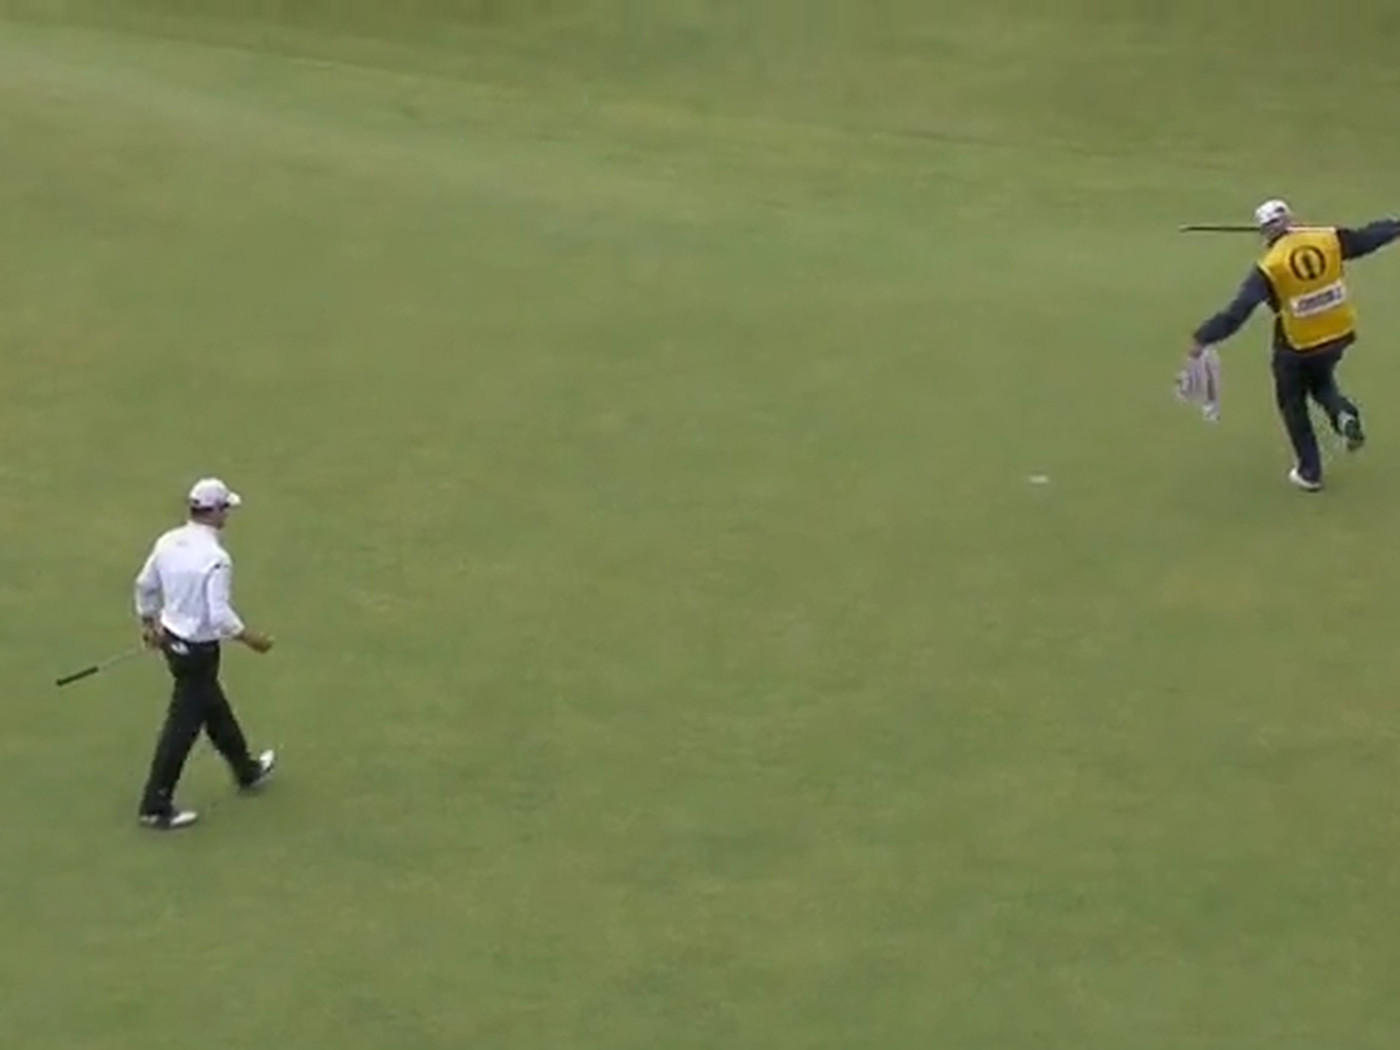 Zach Johnson's caddie celebrates with amazing birdie dance